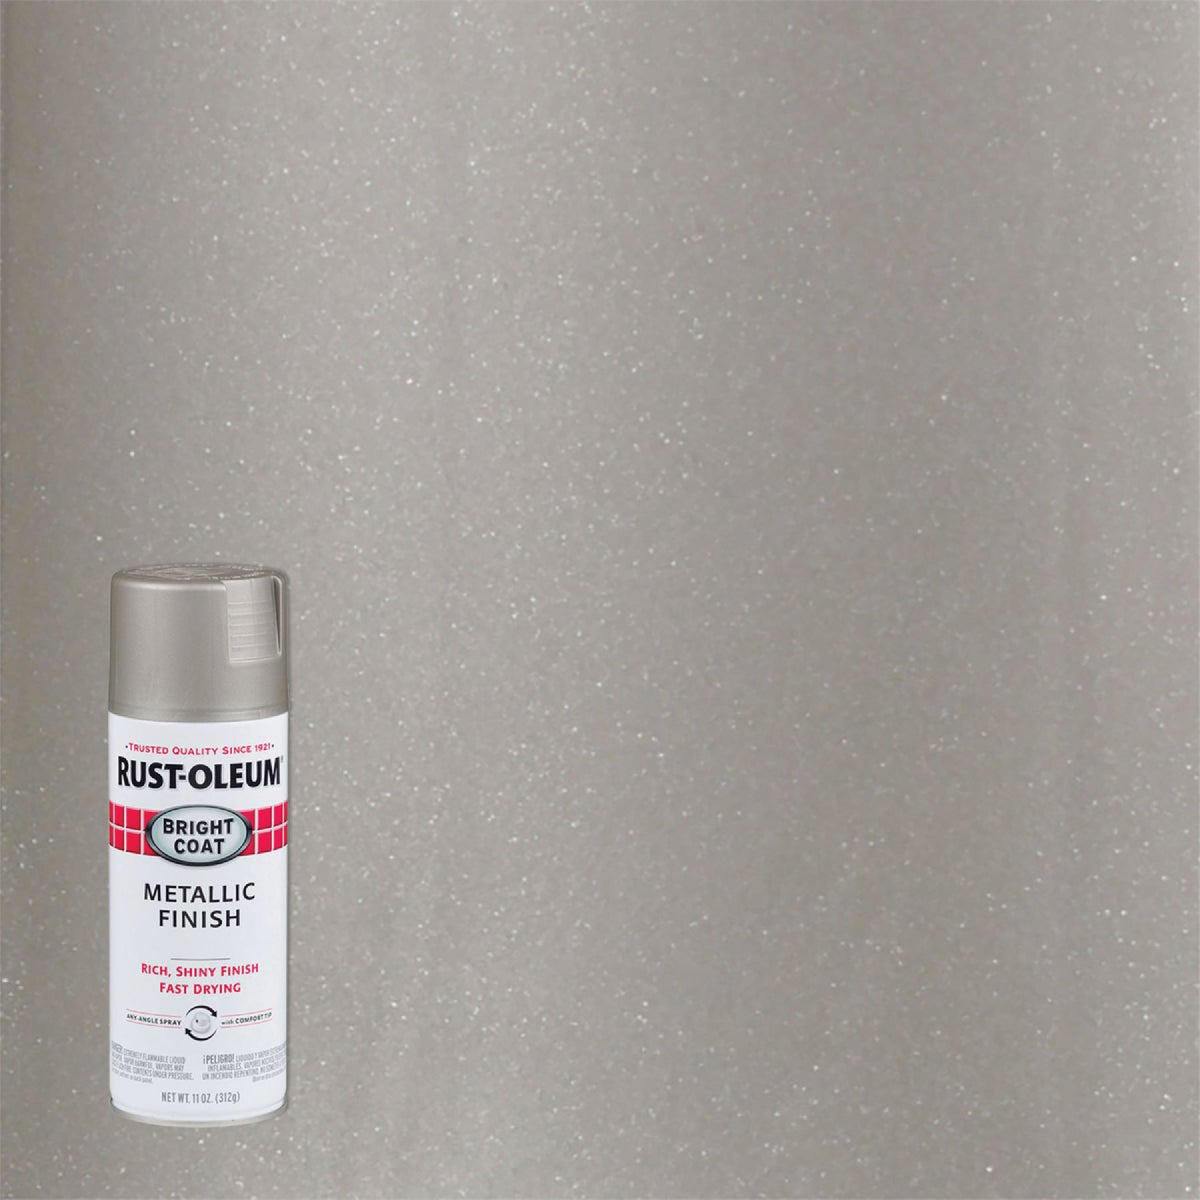 ALUMINUM SPRAY PAINT - 7715-830 by Rustoleum